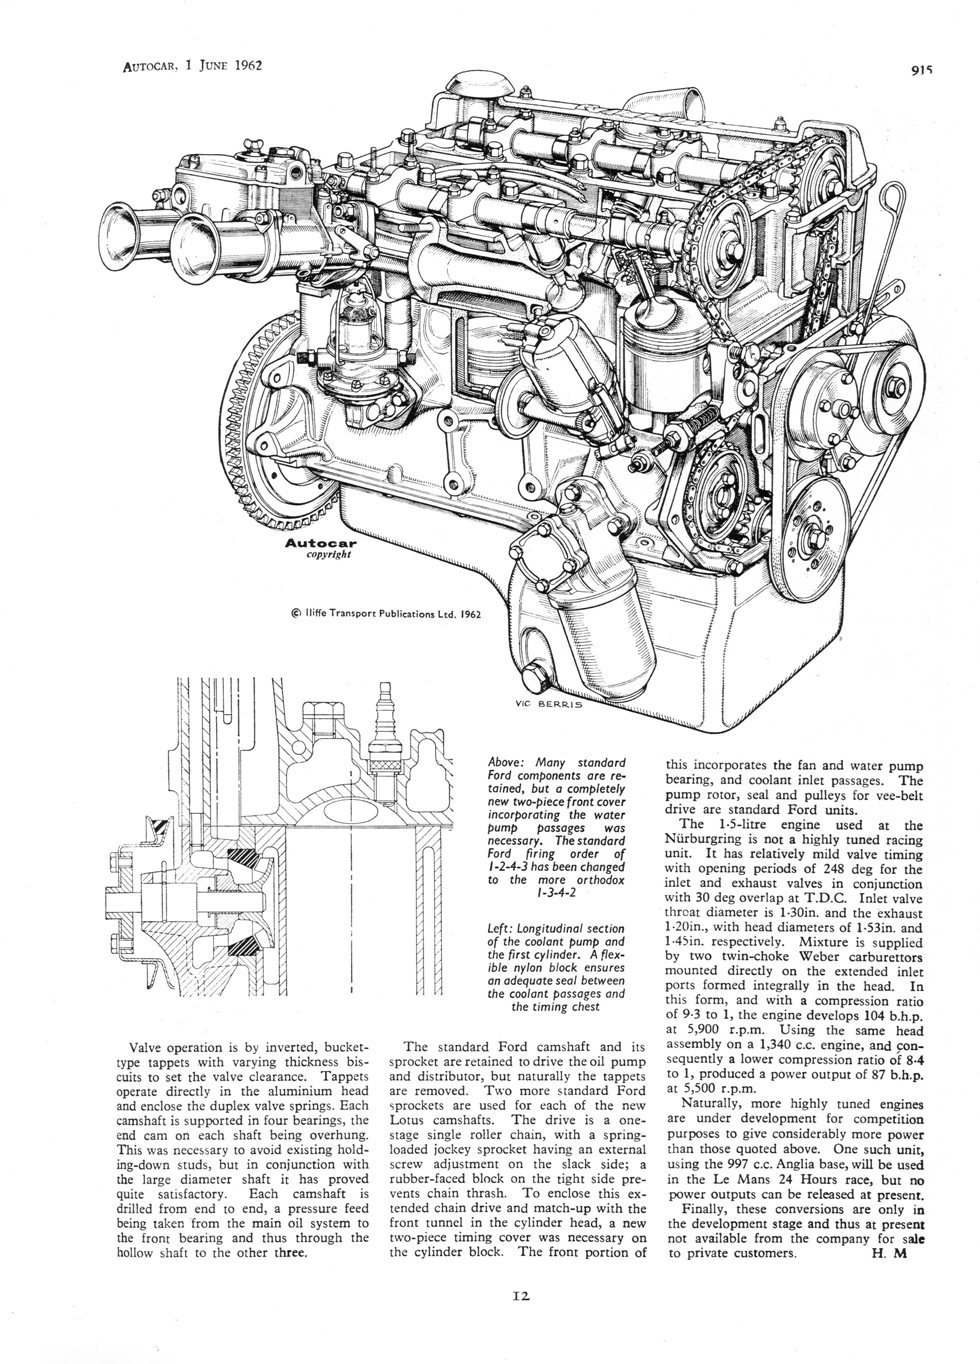 The old Anglia was treated to a new 1500cc 5 bearing engine, and in July, a  new engine was installed in the second Elan prototype.